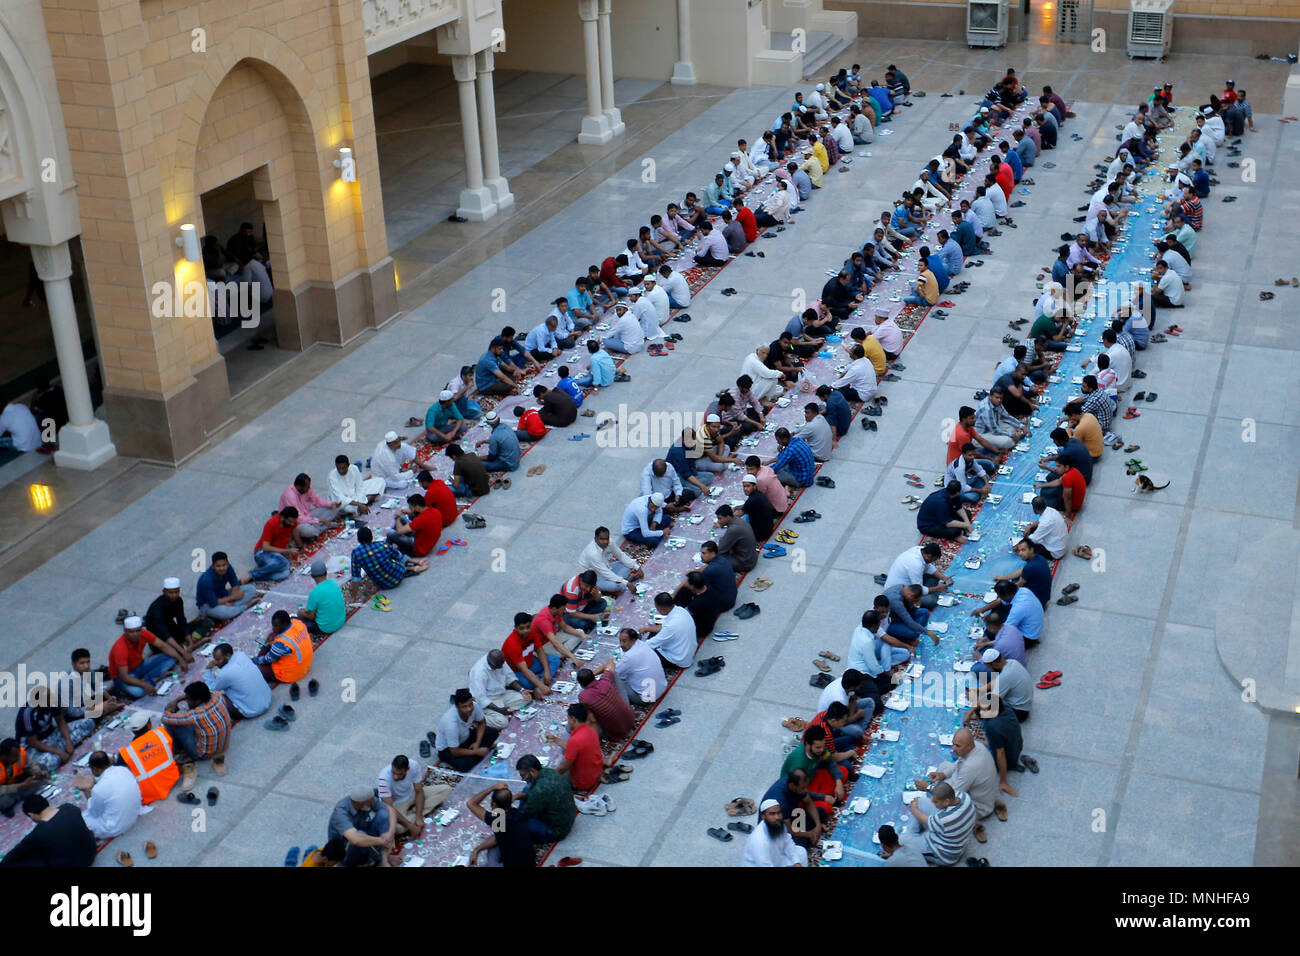 riyadh saudi arabia 17th may 2018 muslims break their fast on the